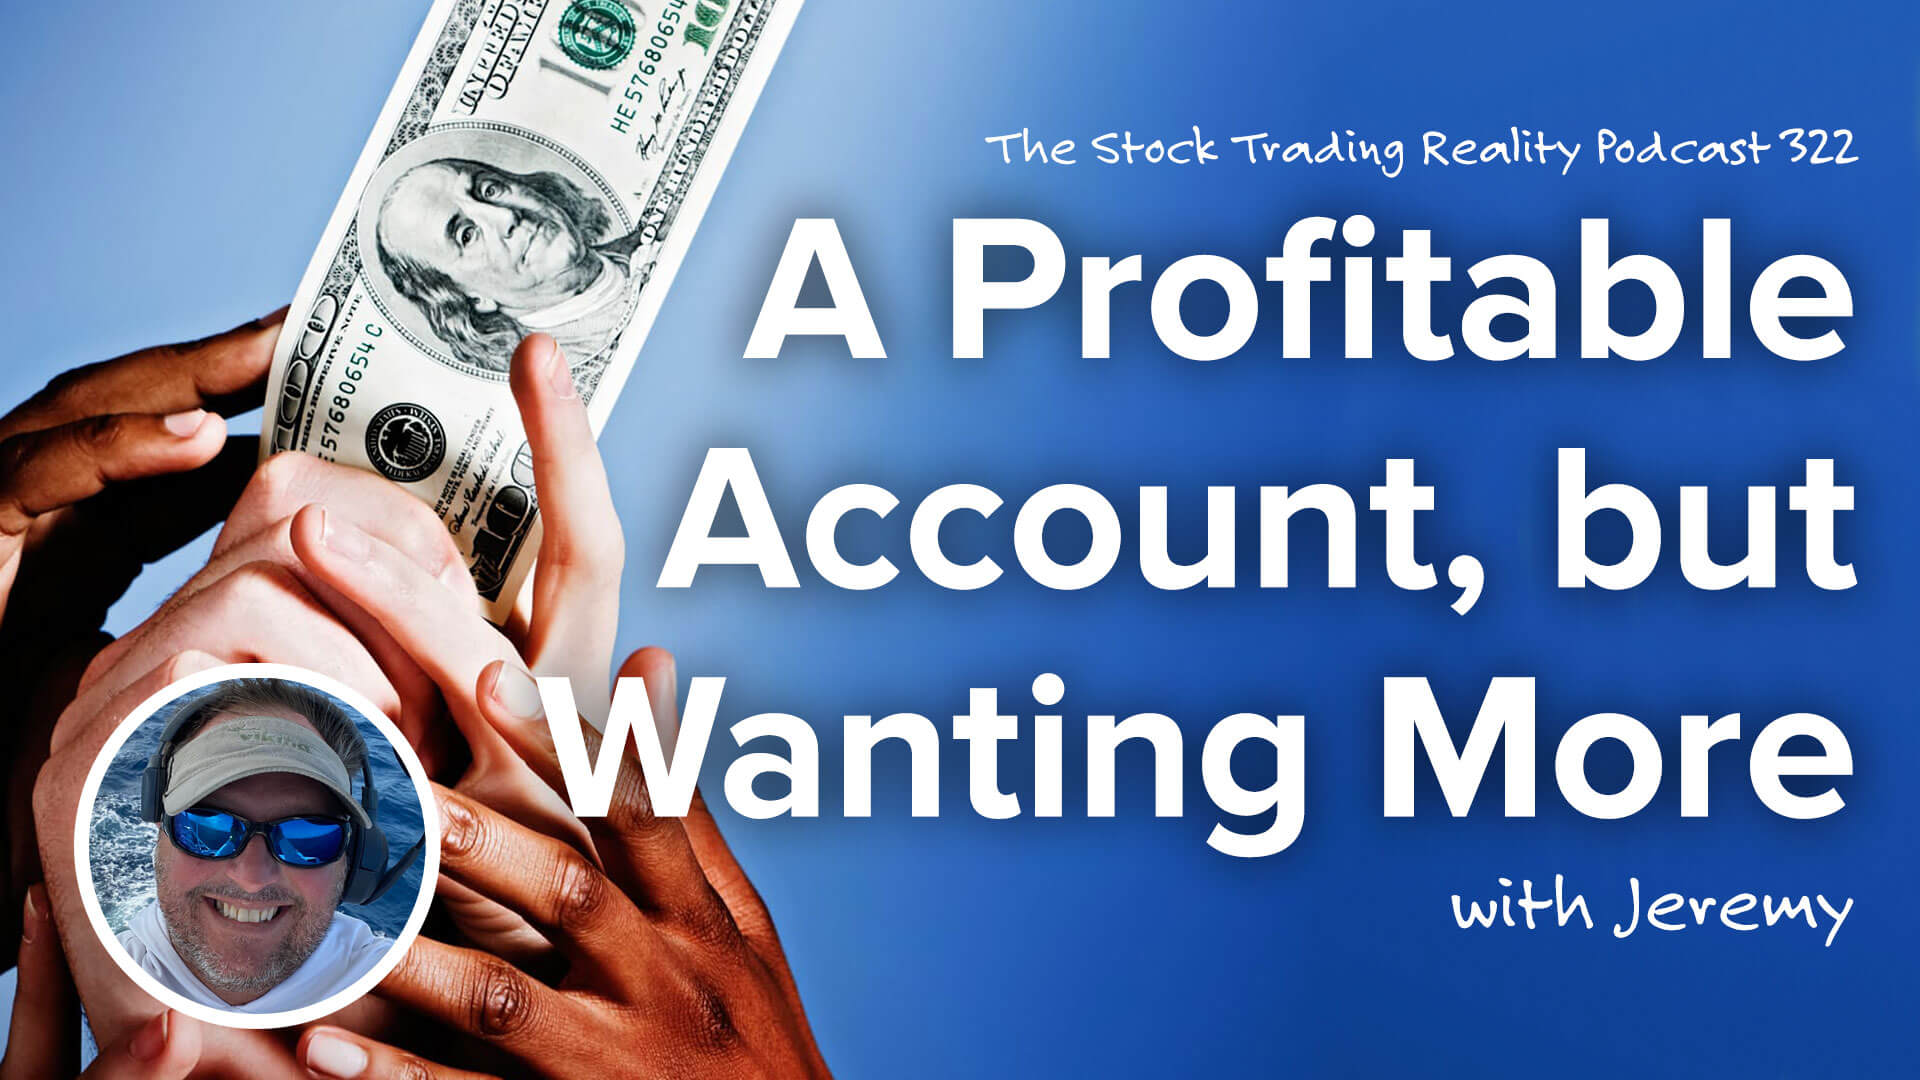 A Profitable Account, but Wanting More   STR 322